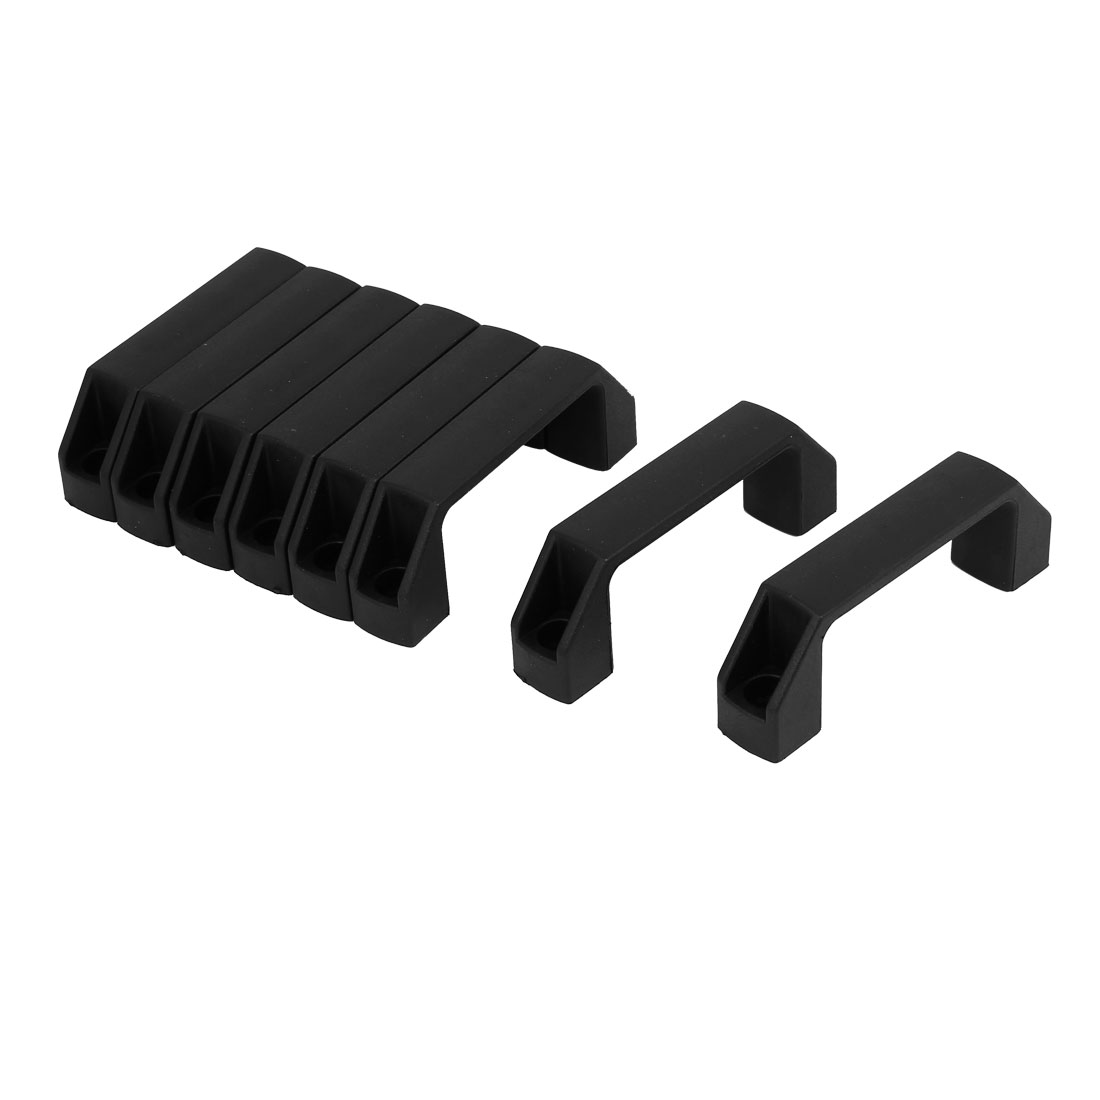 Cabinet Gate Door Plastic Pull Handles Black 90mm Hole Spacing 8pcs